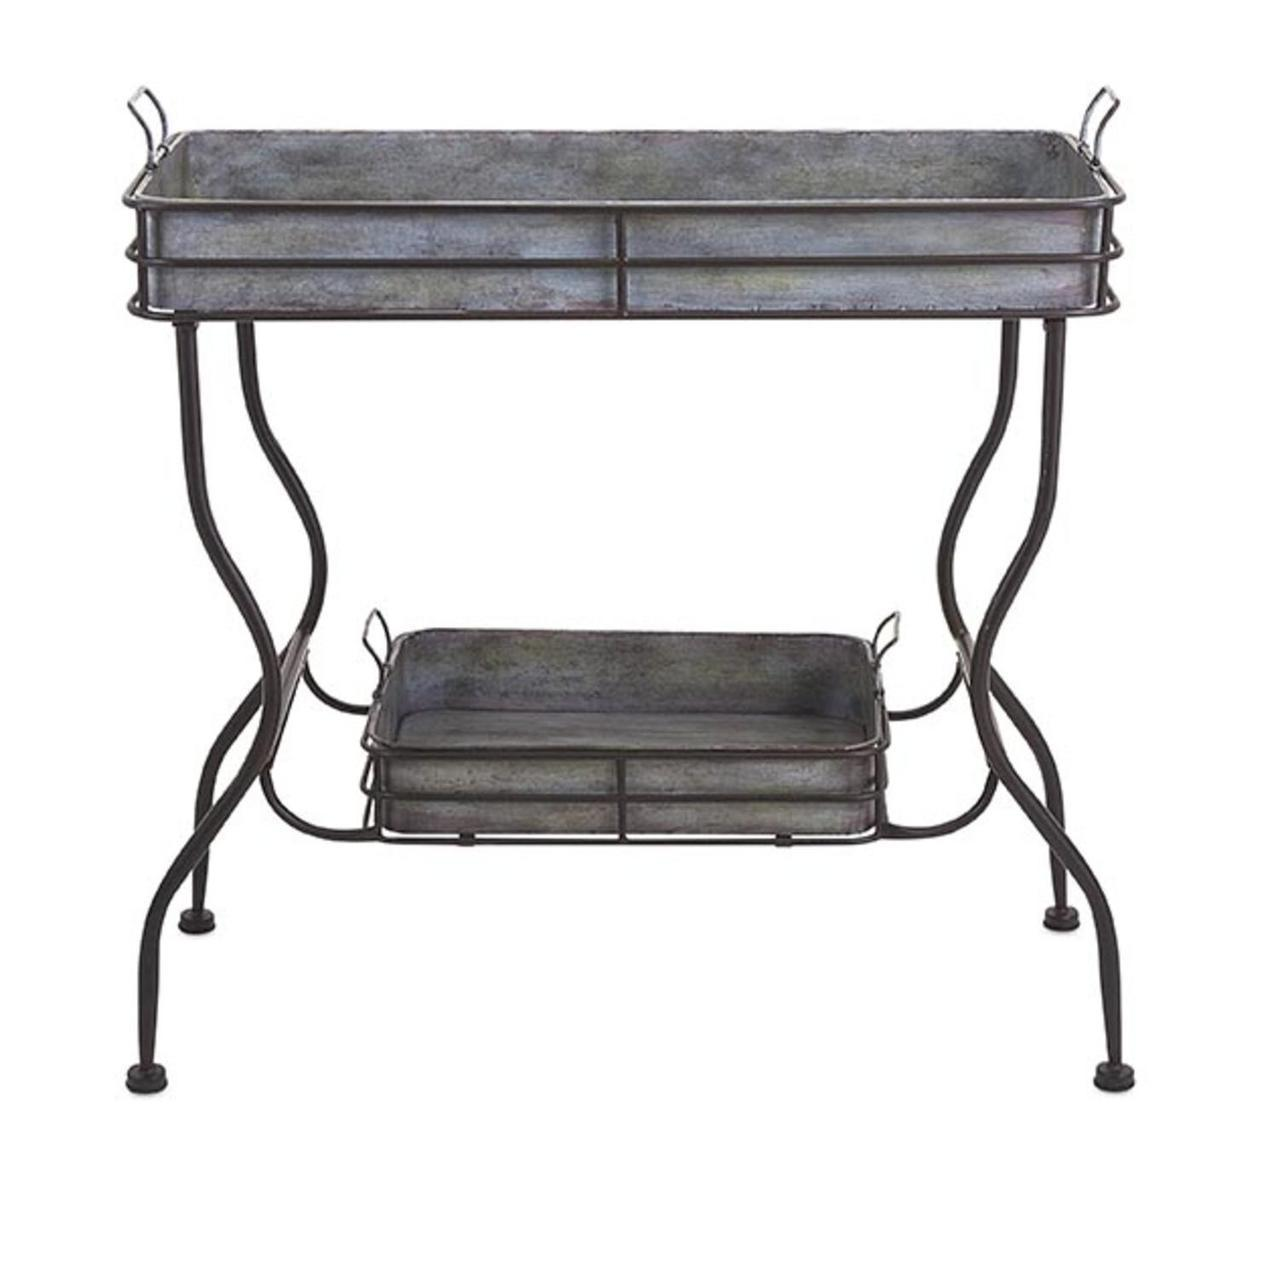 rustic silver galvanized metal accent table with removable tray serving trays espresso colored end tables coffee drawers ikea chairside kitchen furniture best outdoor antique